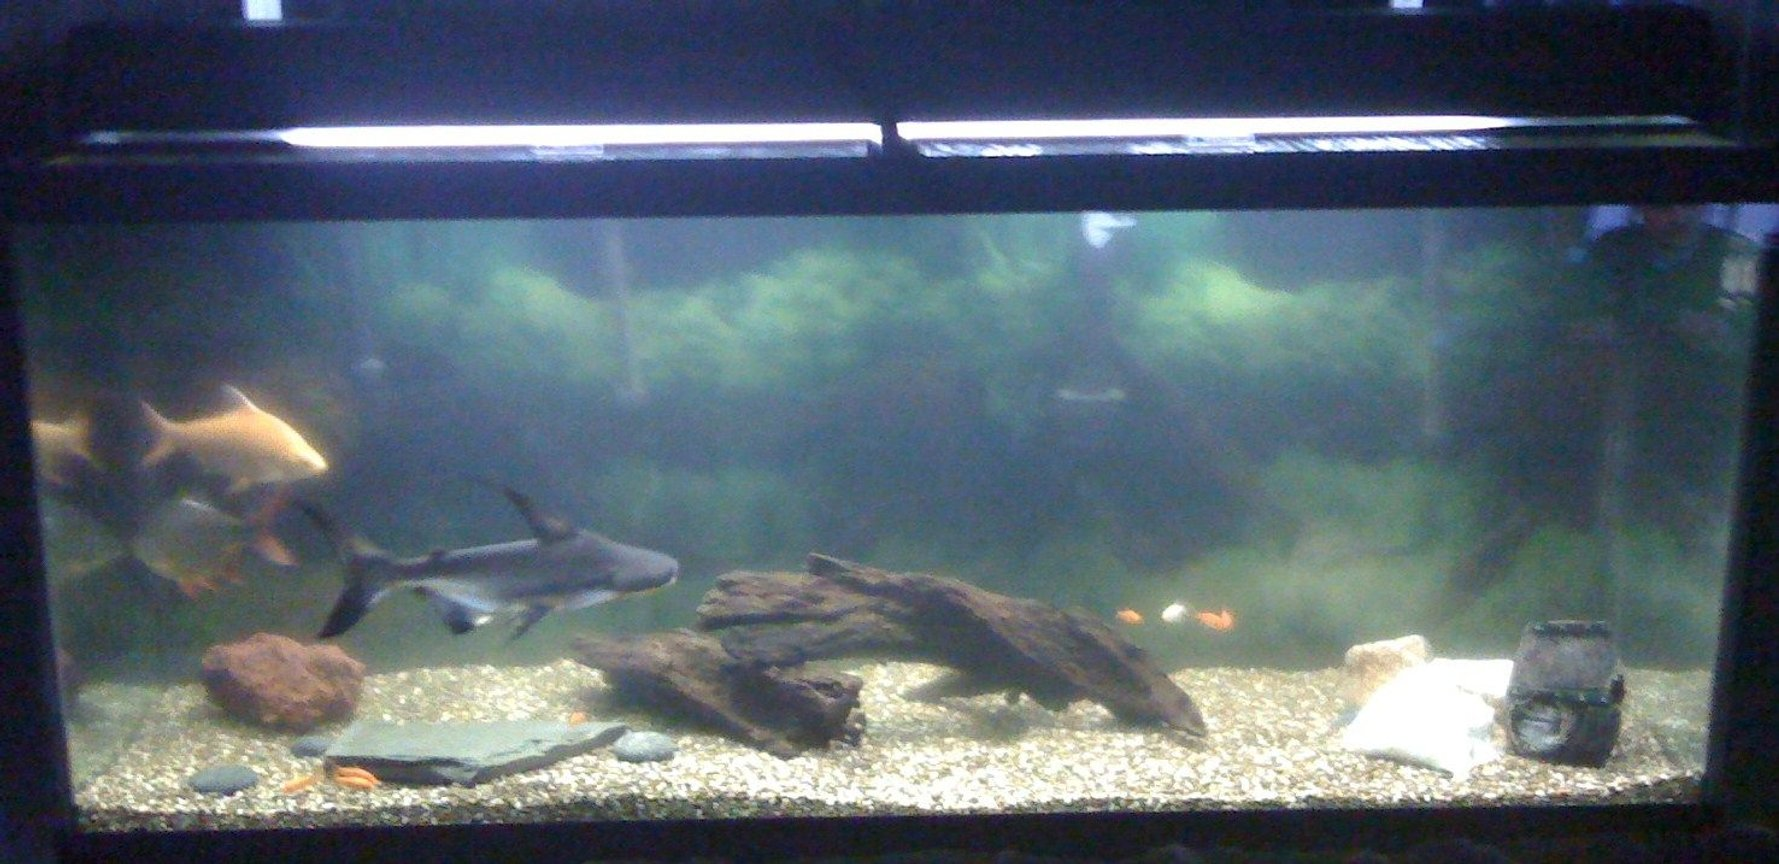 120 gallons freshwater fish tank (mostly fish and non-living decorations) - Not a great picture